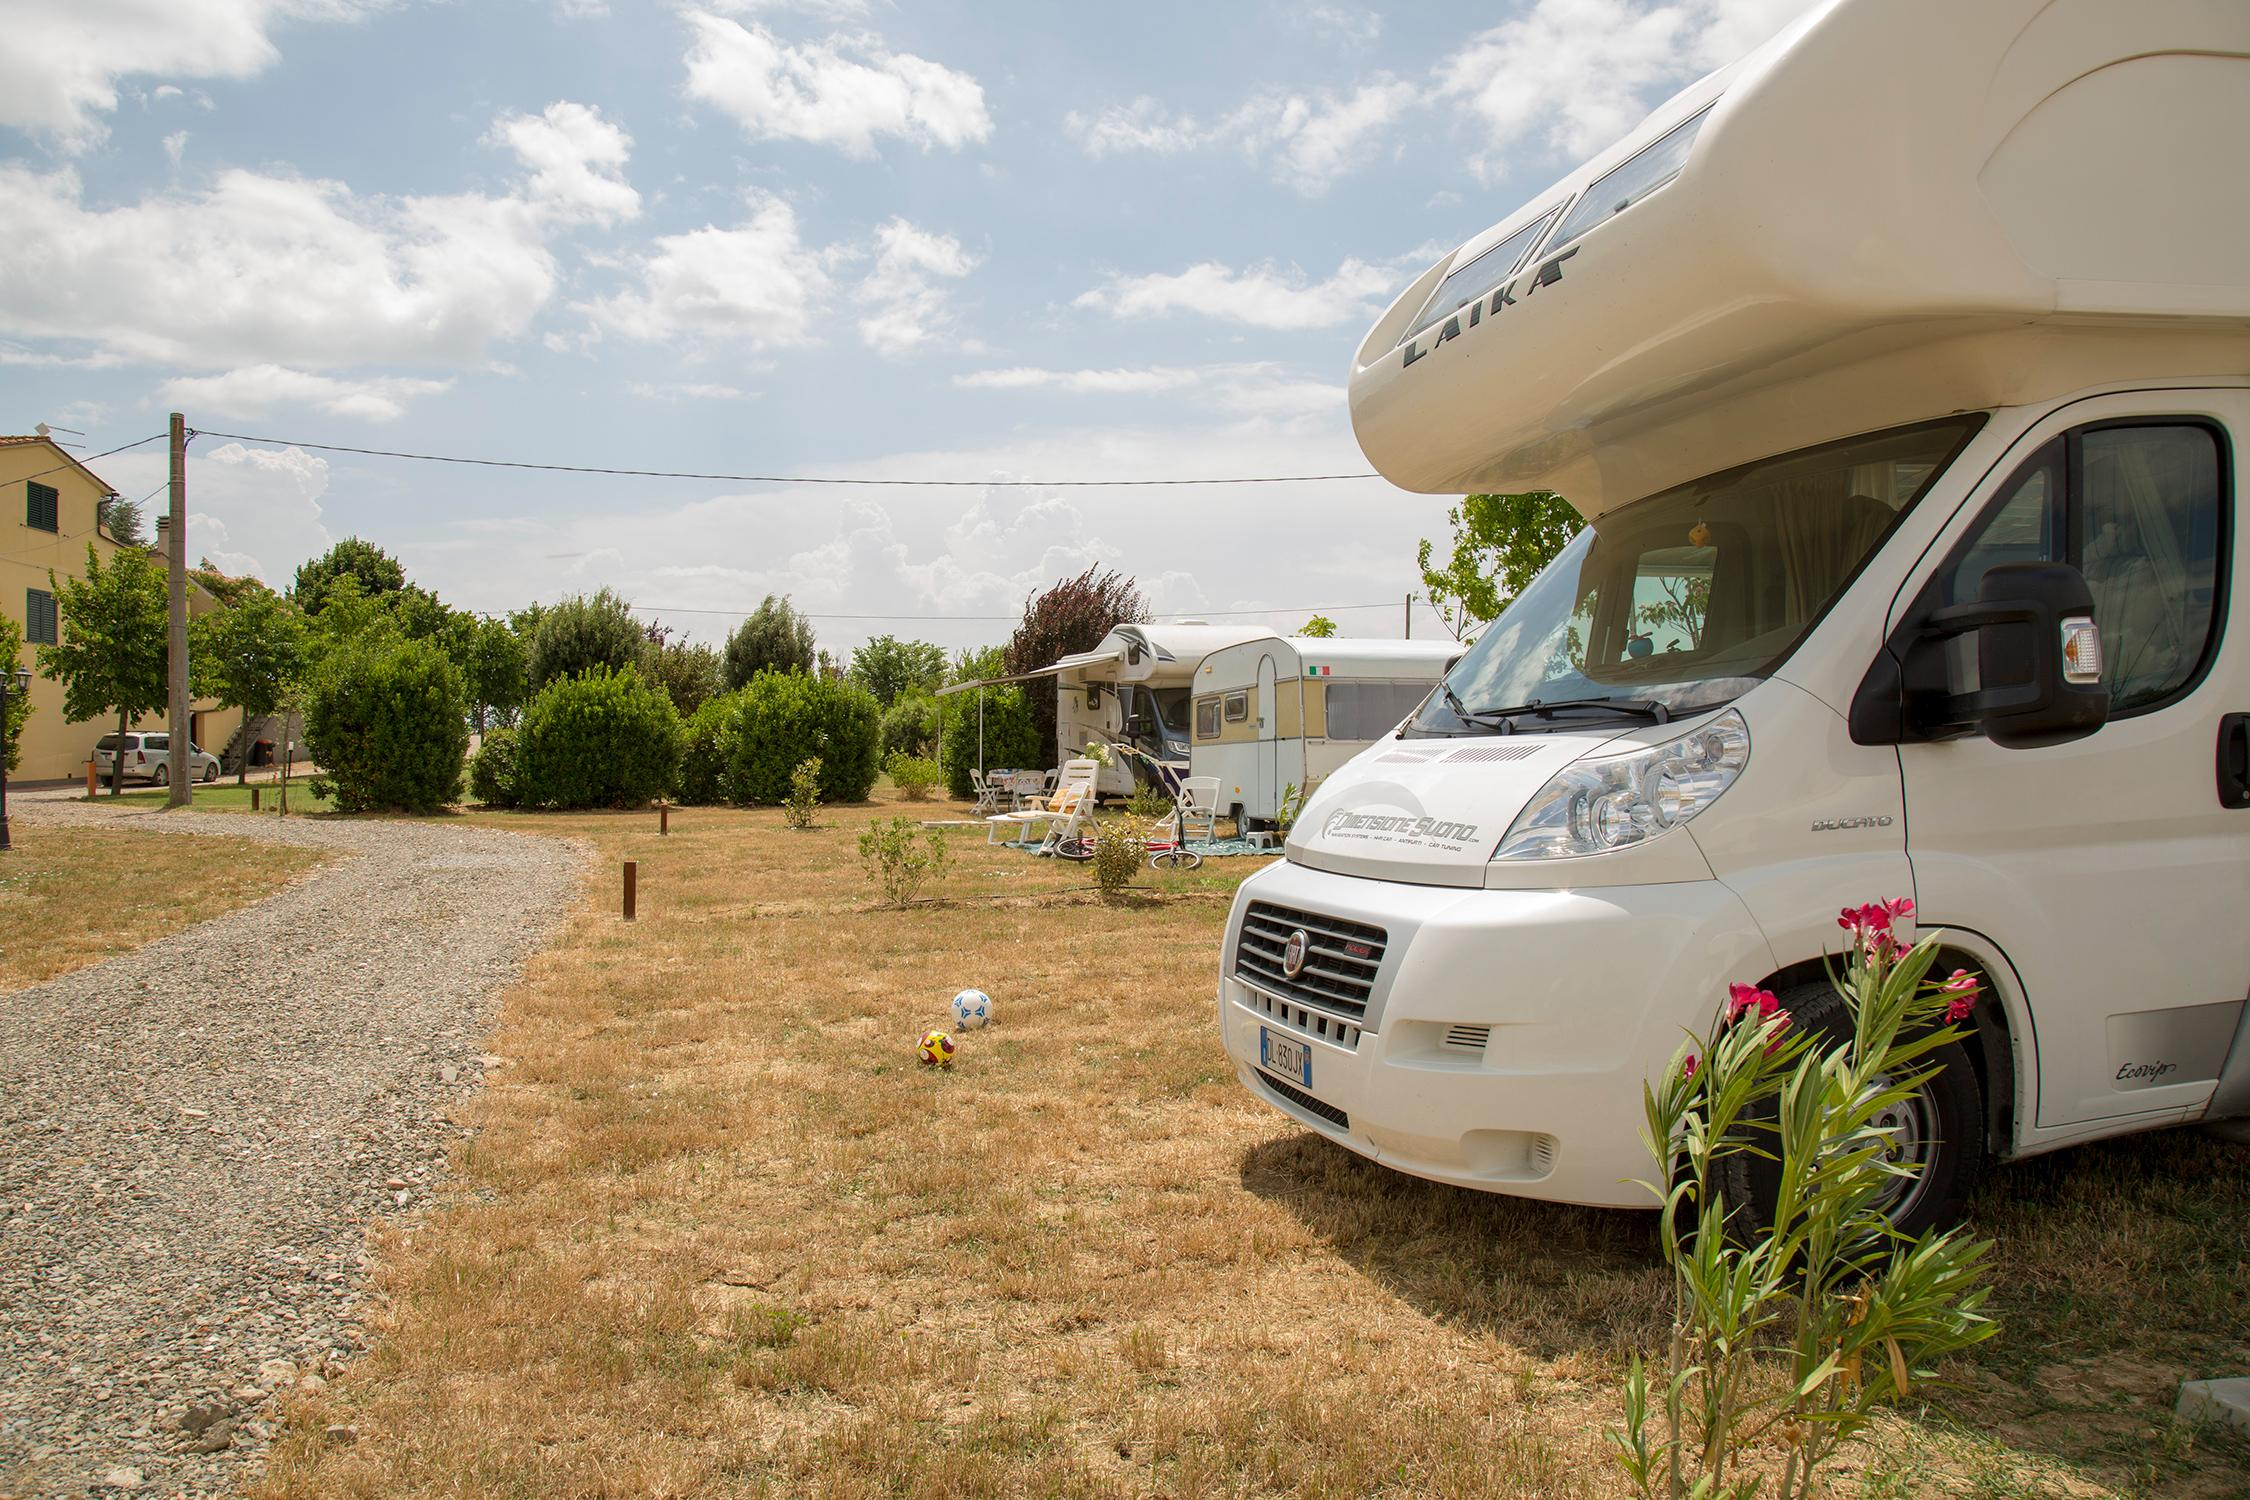 Parking areas for campers, trailers and caravans. Campsite in Cortona, Tuscany